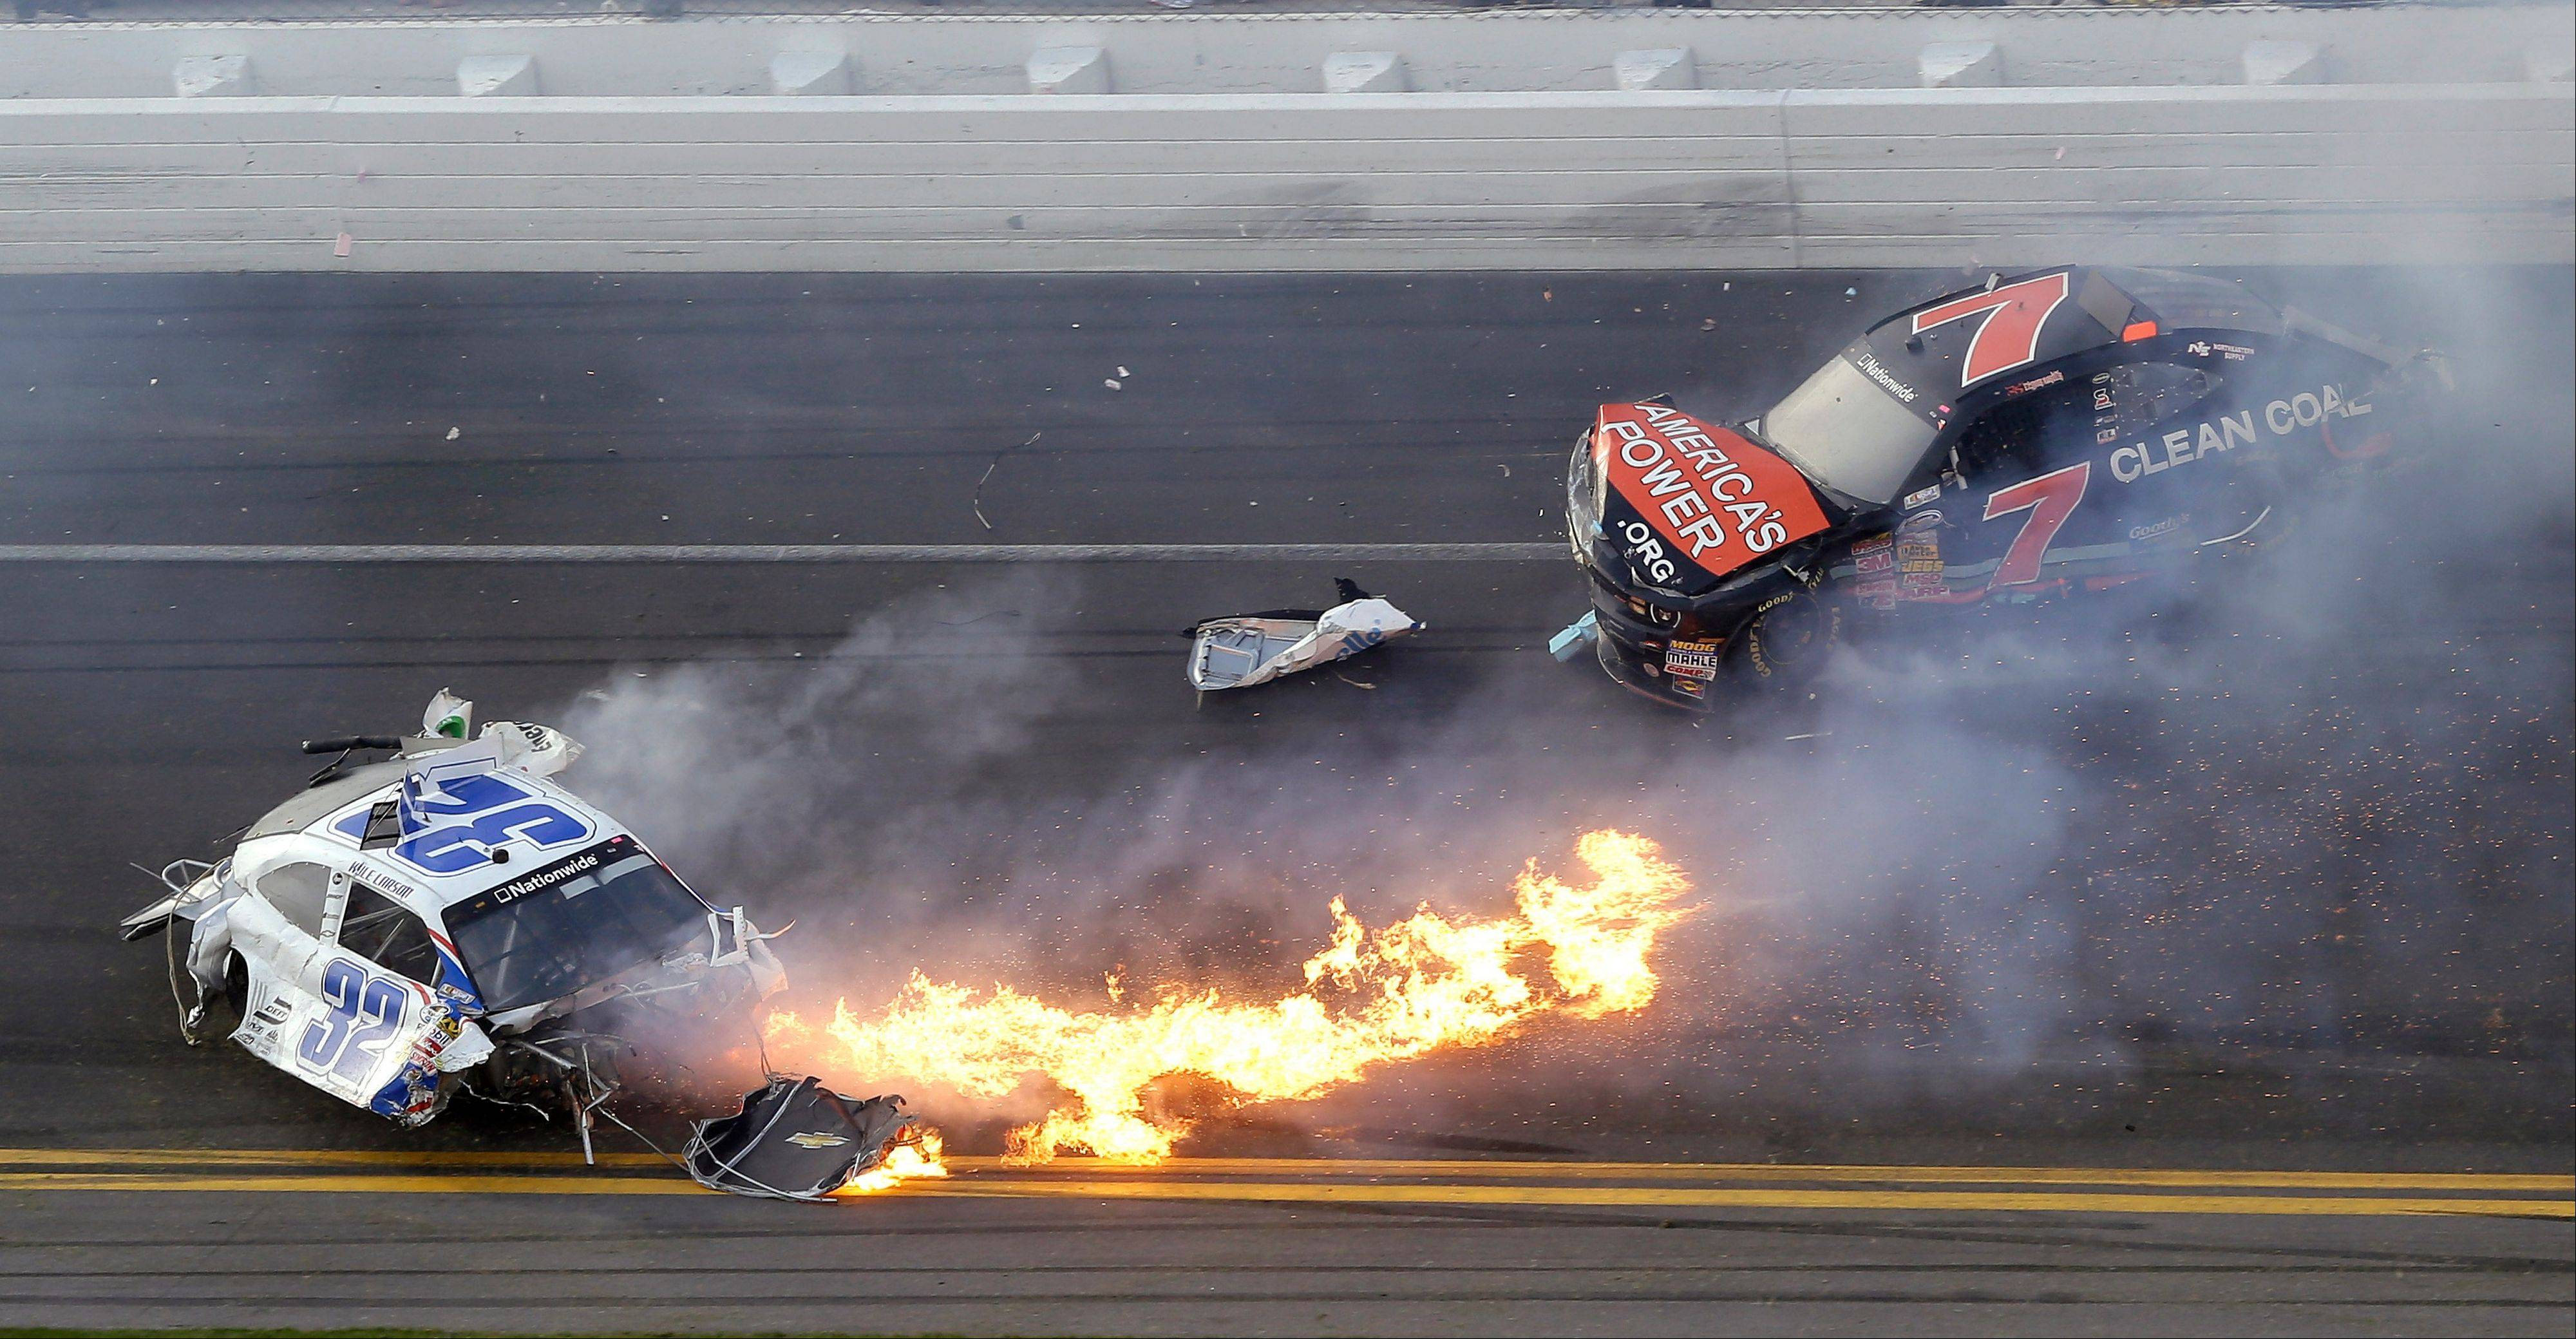 Kyle Larson, left, slides to a stop near Regan Smith (7) after a wreck at the conclusion of the NASCAR Nationwide Series auto race Saturday, Feb. 23, 2013, at Daytona International Speedway in Daytona Beach, Fla. (AP Photo/Chris O'Meara)